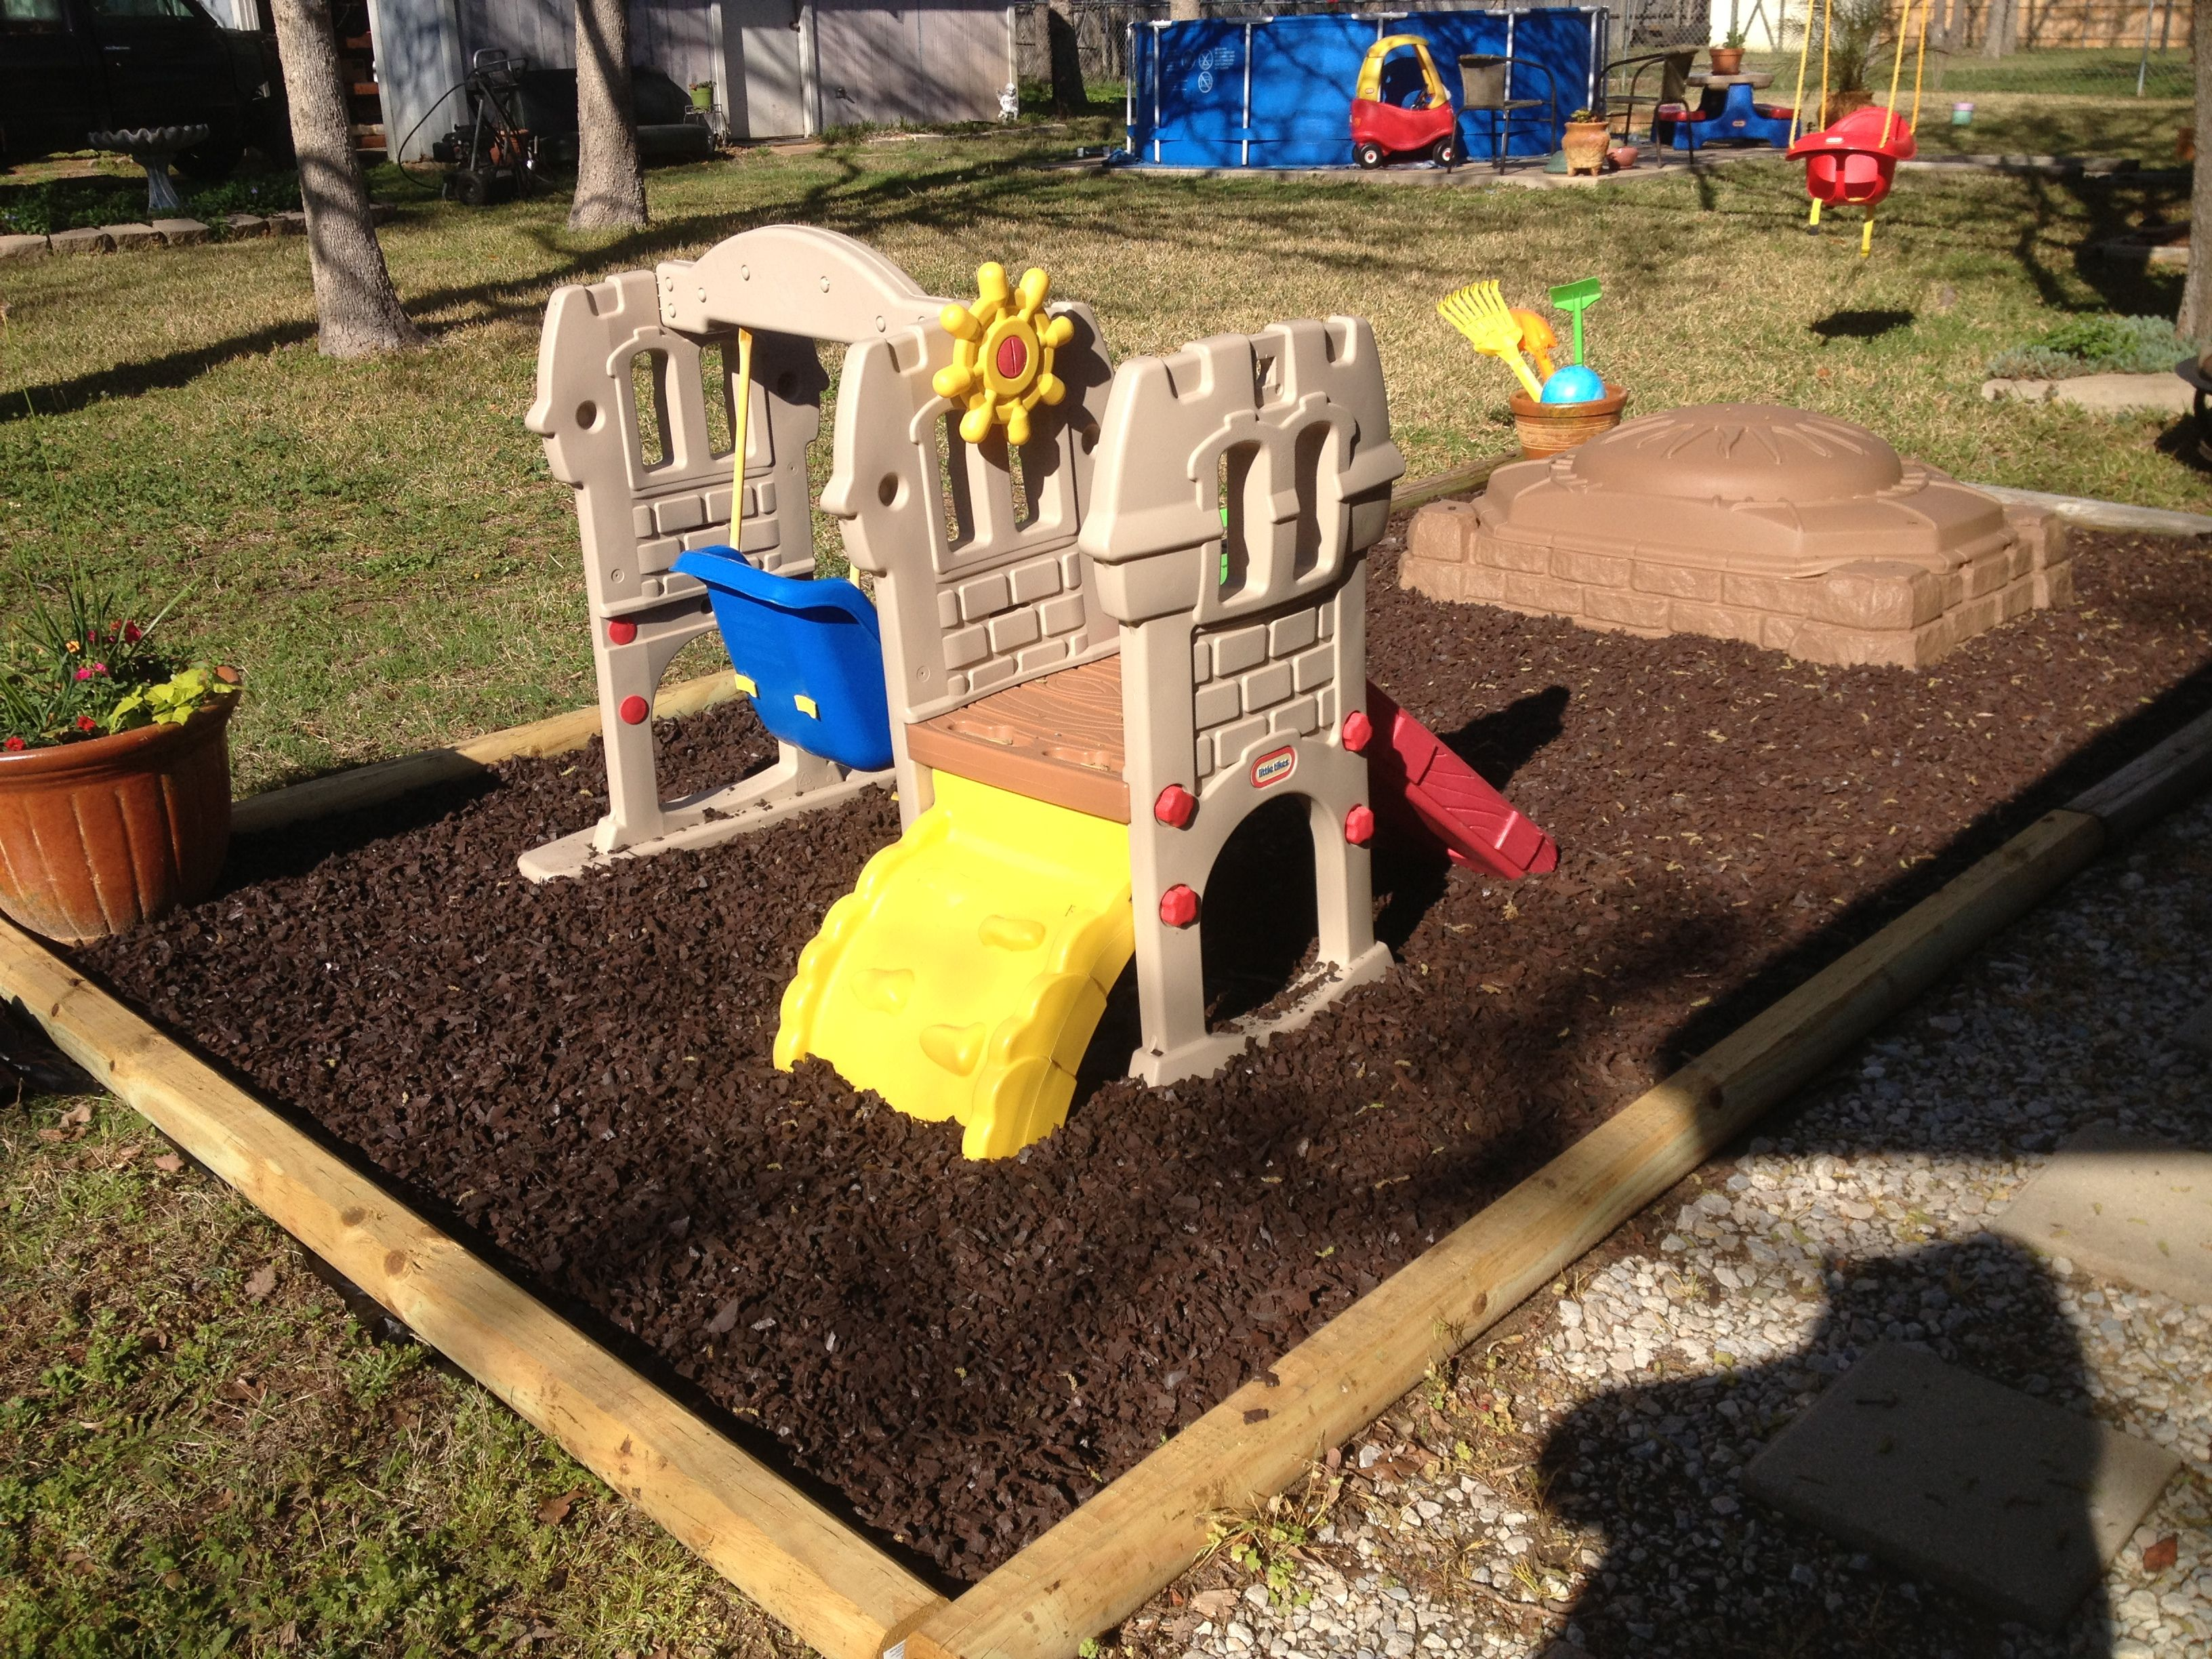 Backyard landscape ideas for kids - My Sons Playground Area Squared Off With Landscape Timber Put Down Some Weed Liner